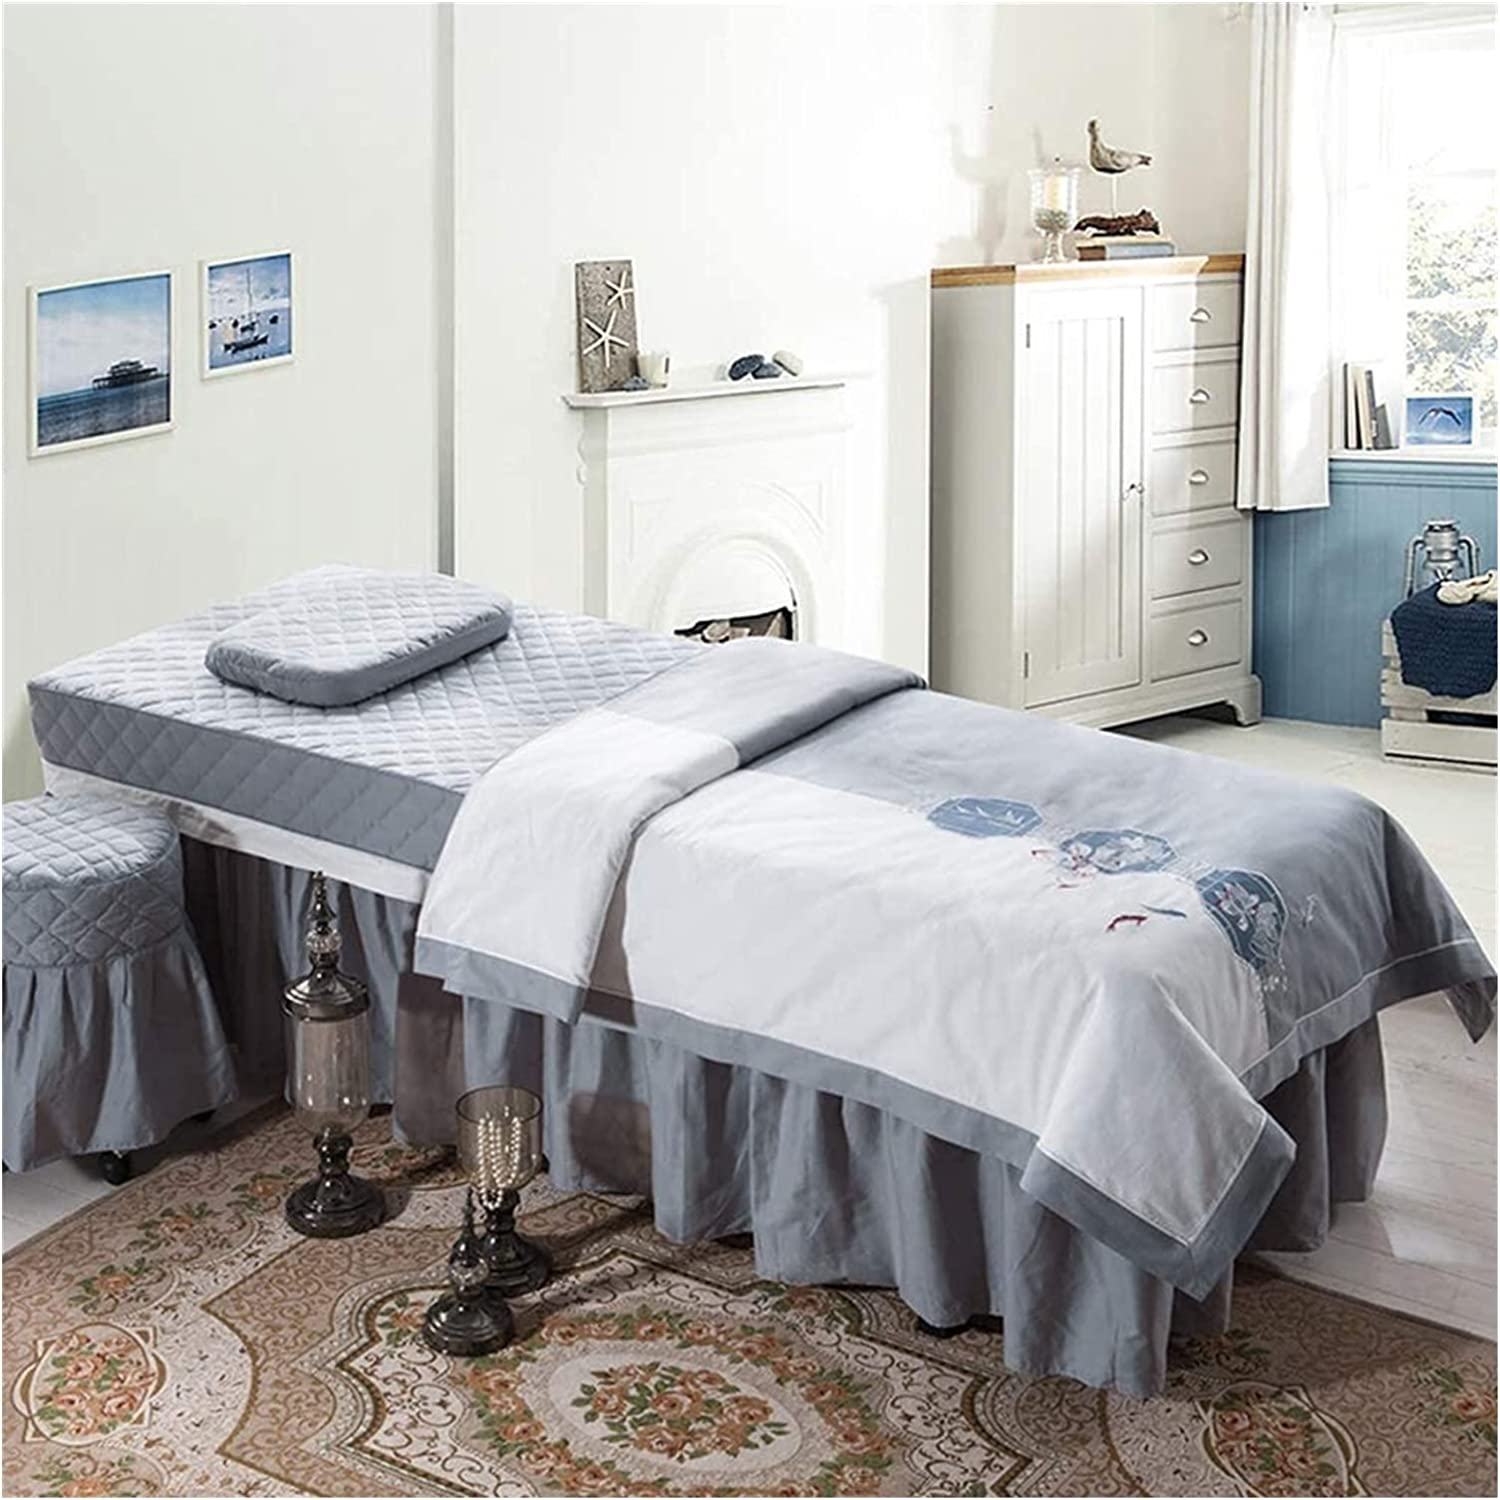 WANGLX 4-Piece Popular products safety Massage Table Simple Skirt Set Sheet